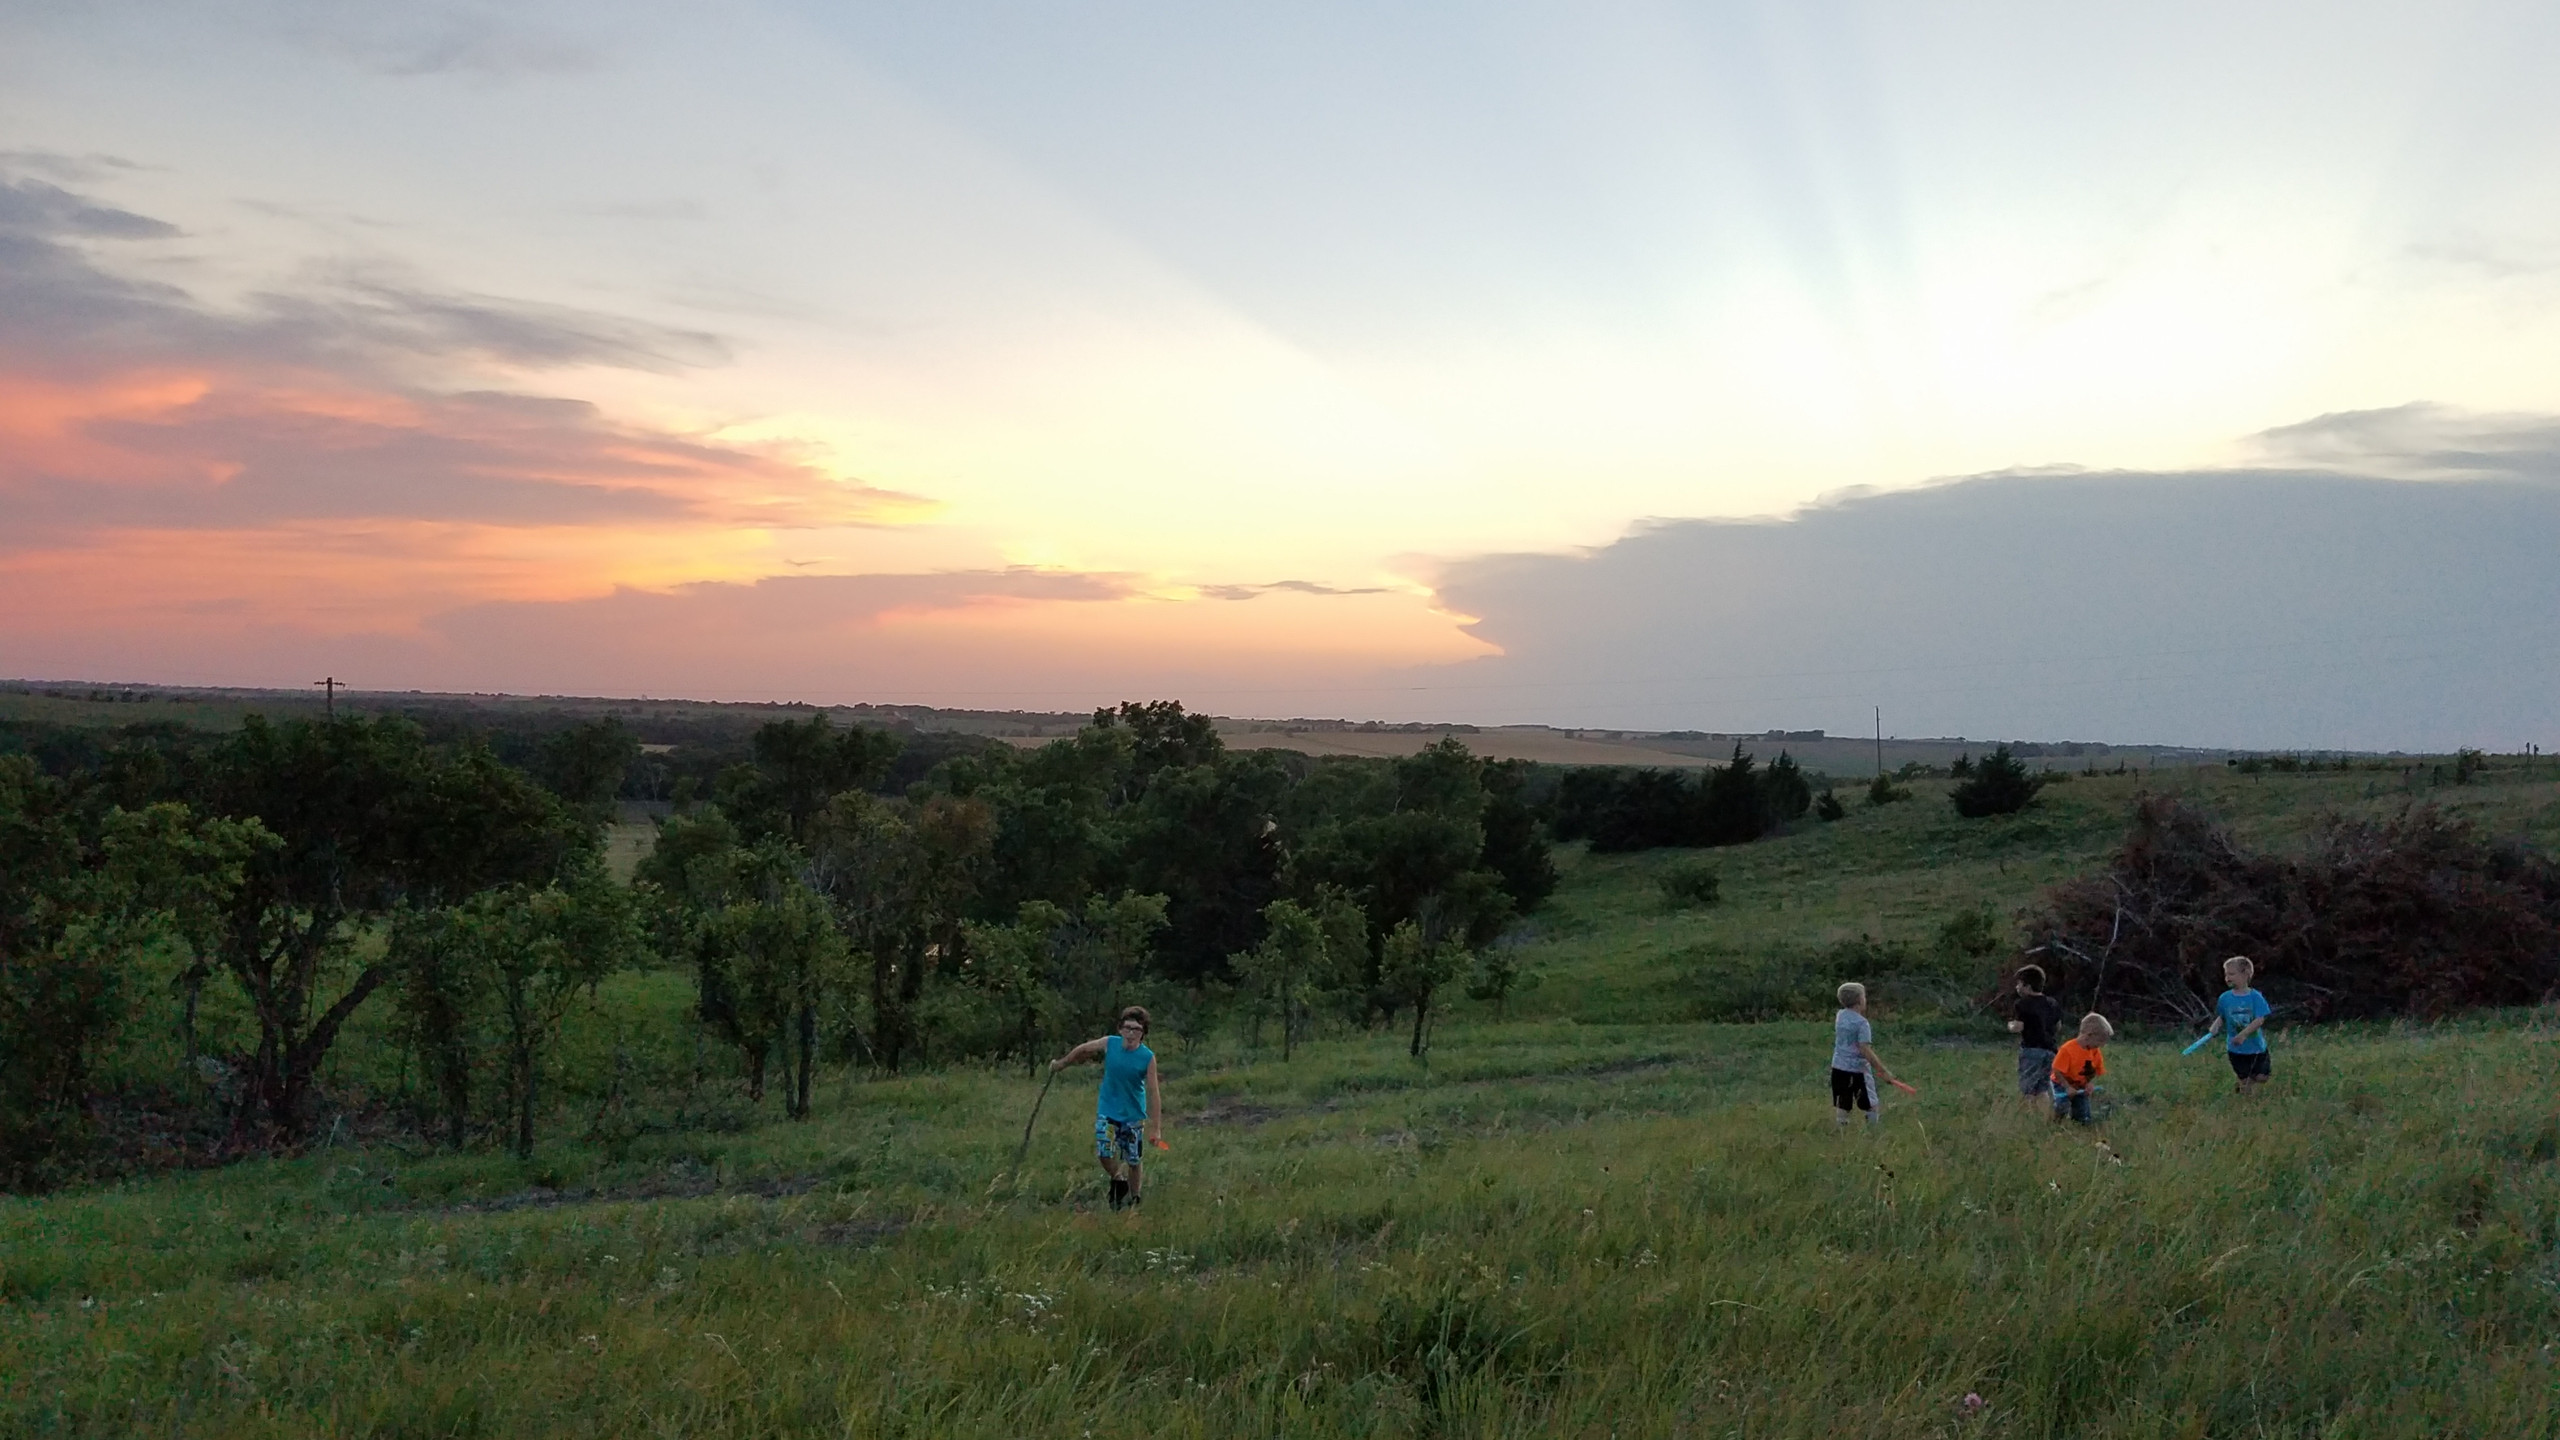 Sunset View on Oil Well Hill